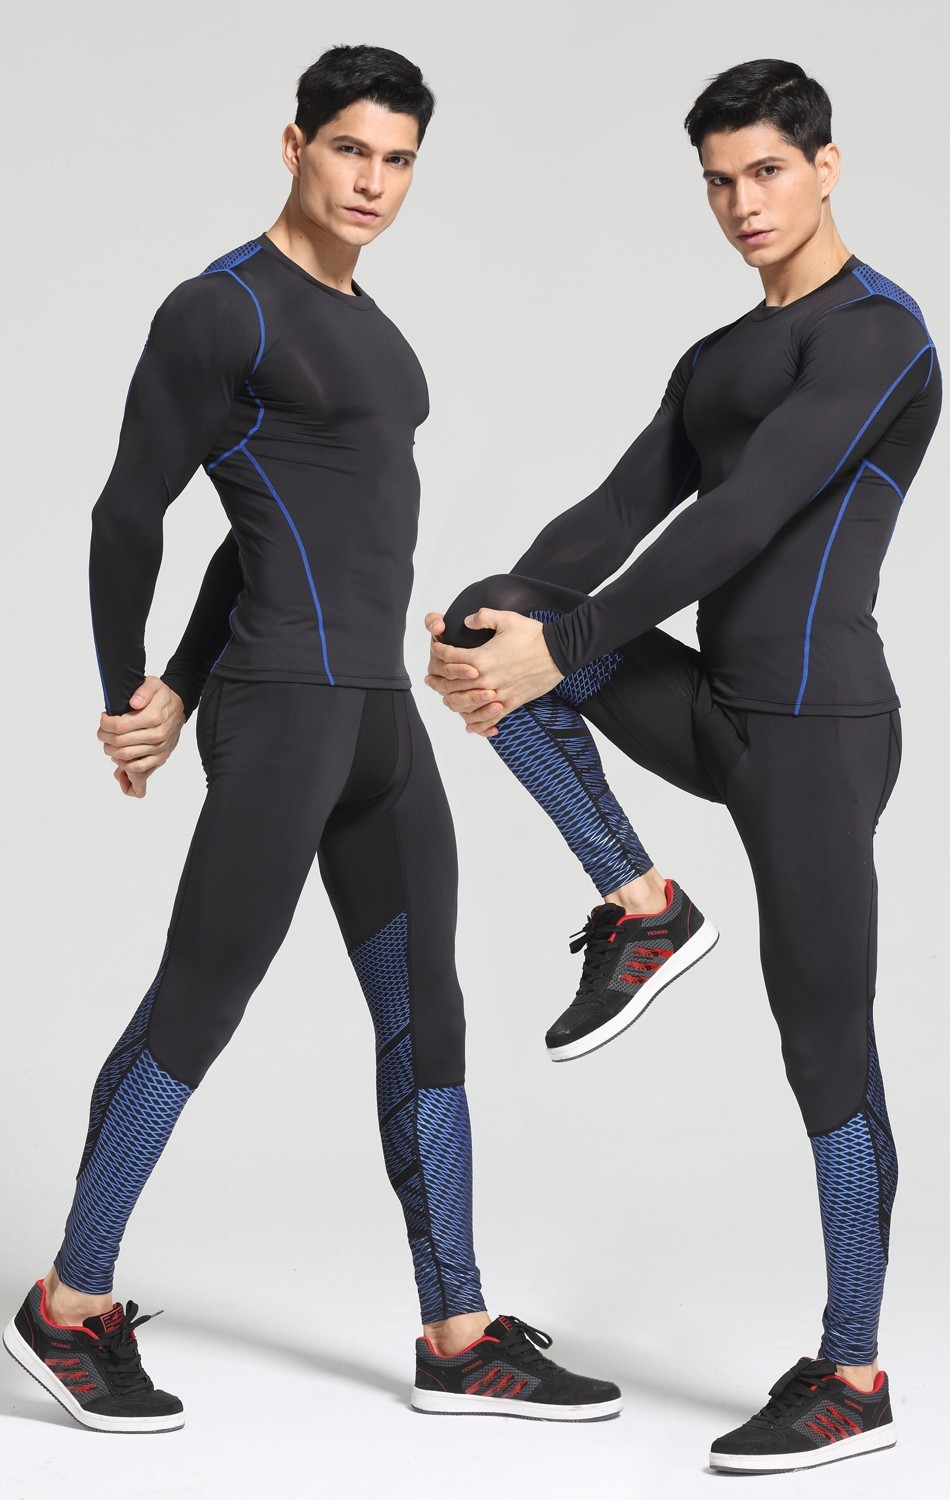 Foto on 2 man of t-shirt Men's compression t-shirt & pants for sport. 2 pieces Men's compression t-shirt & pants for sport